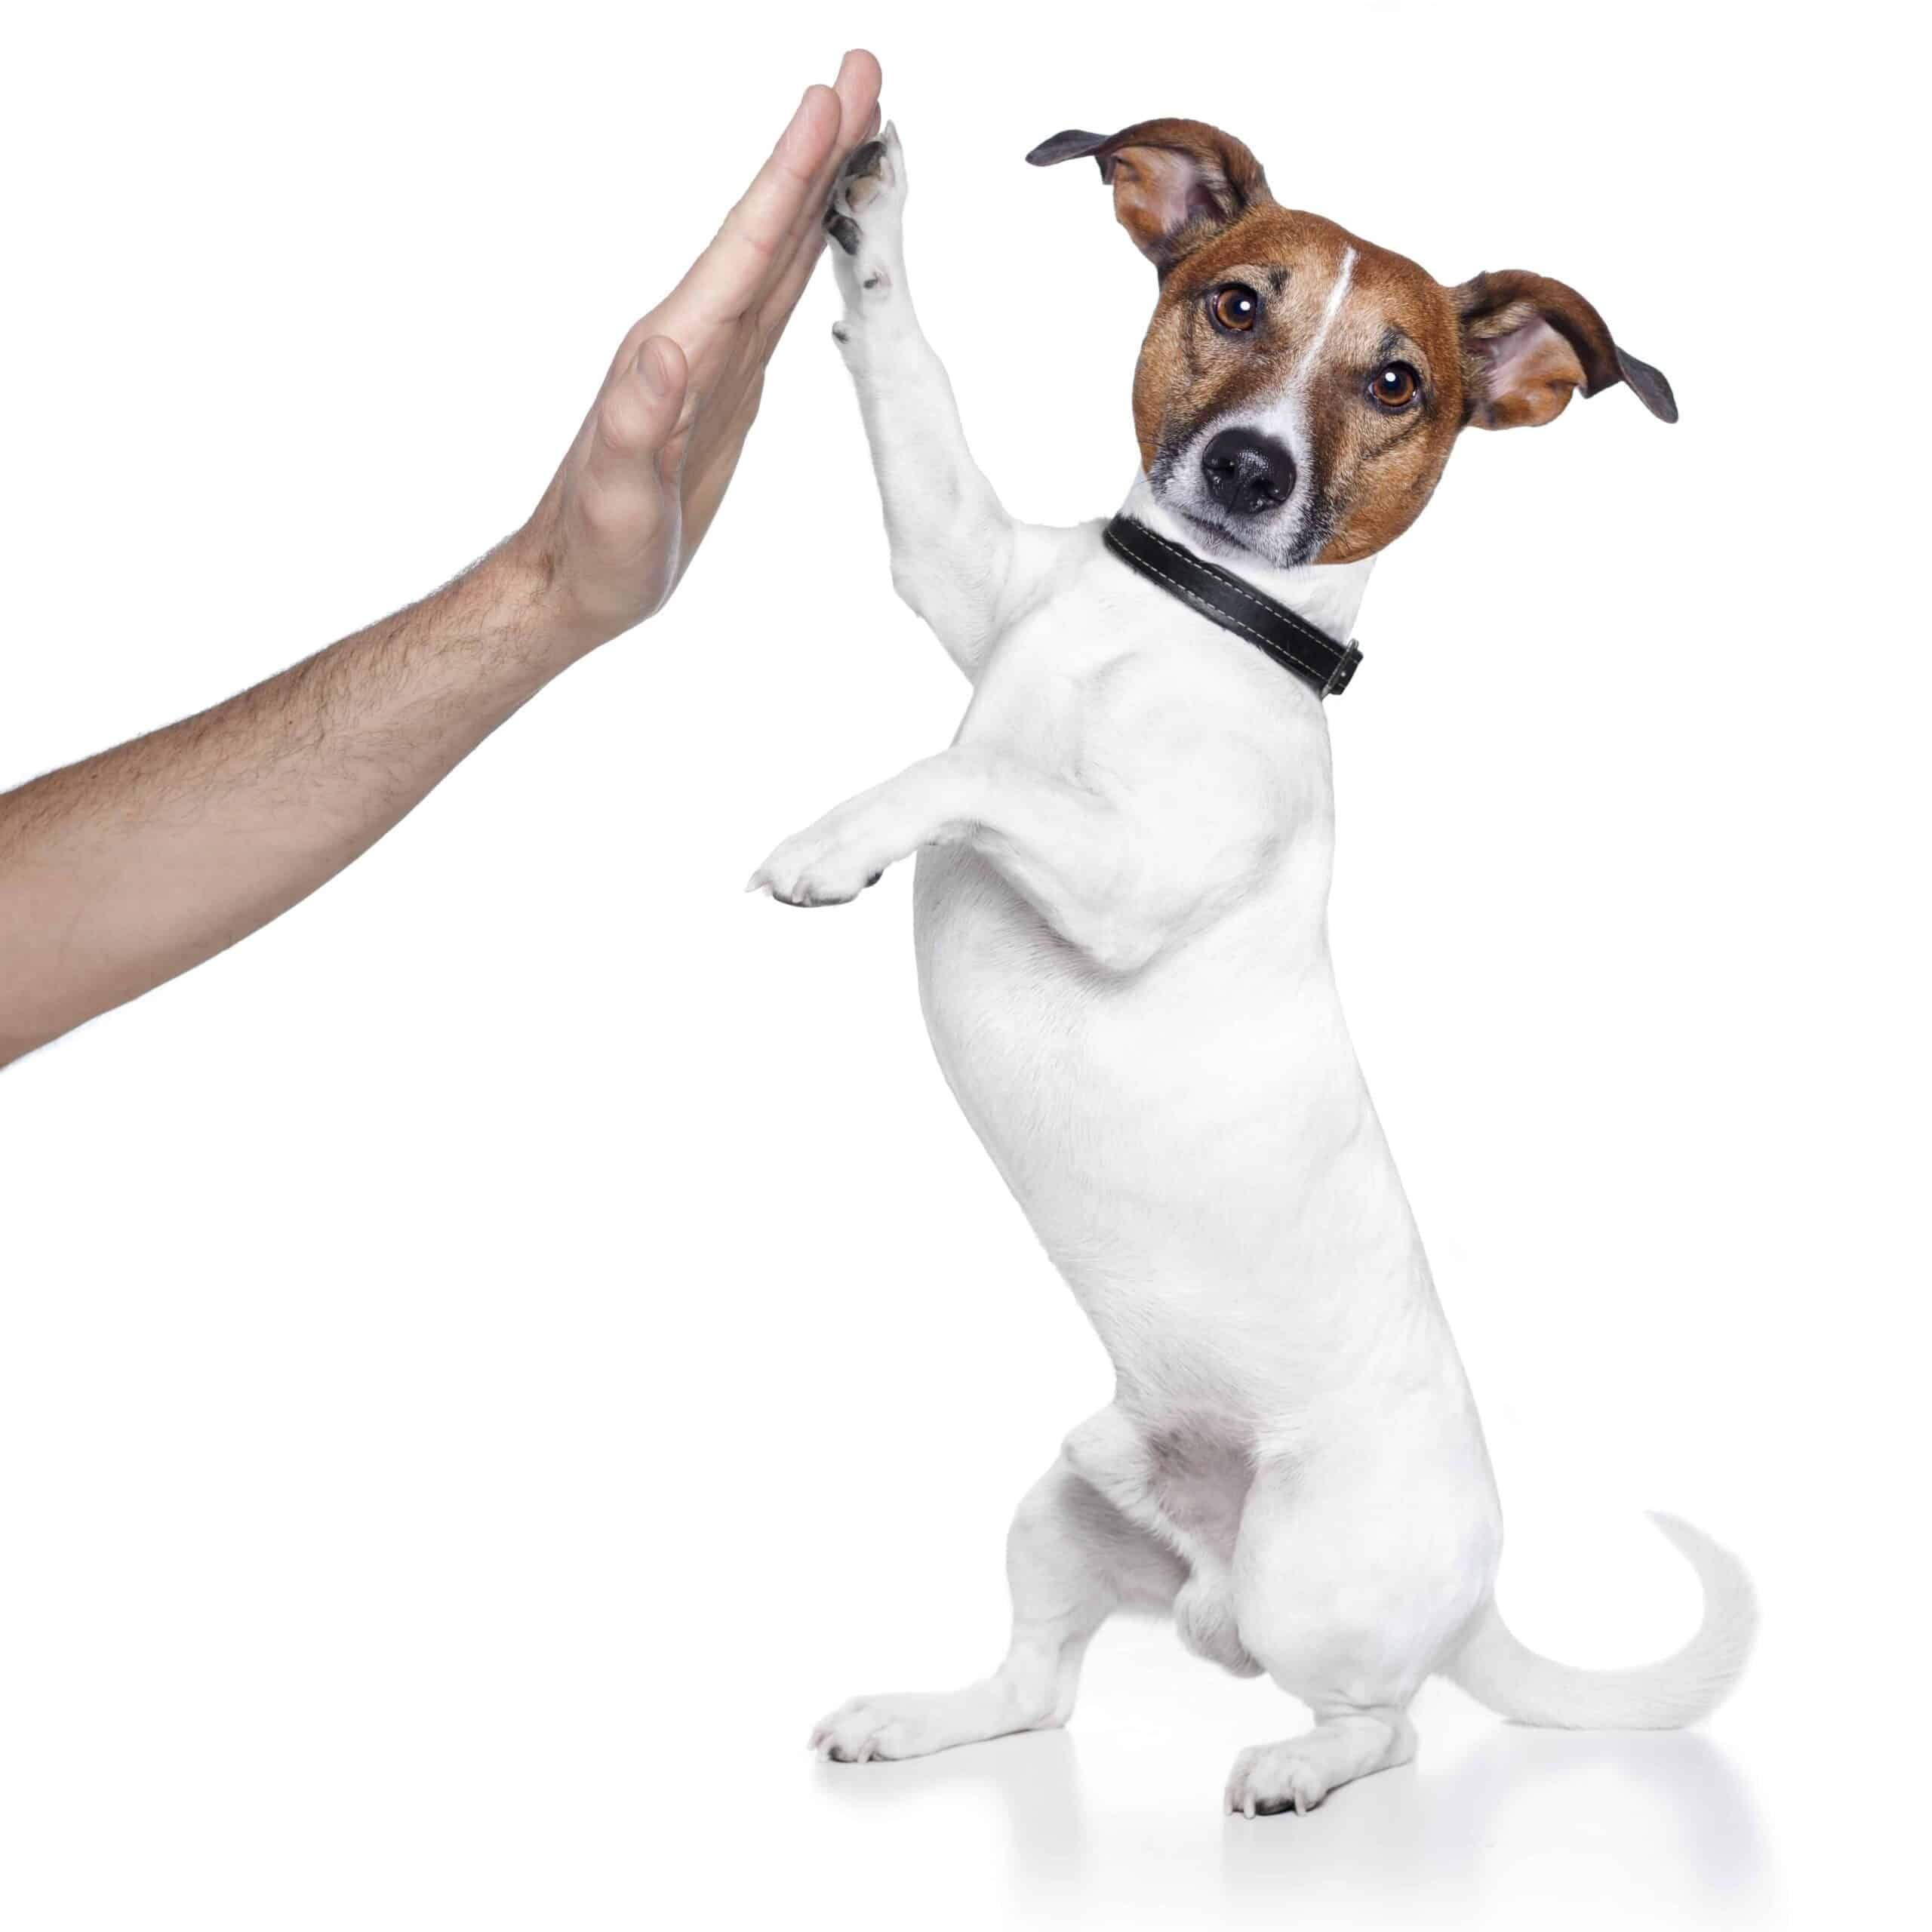 dog high five, #dog, #dog high five